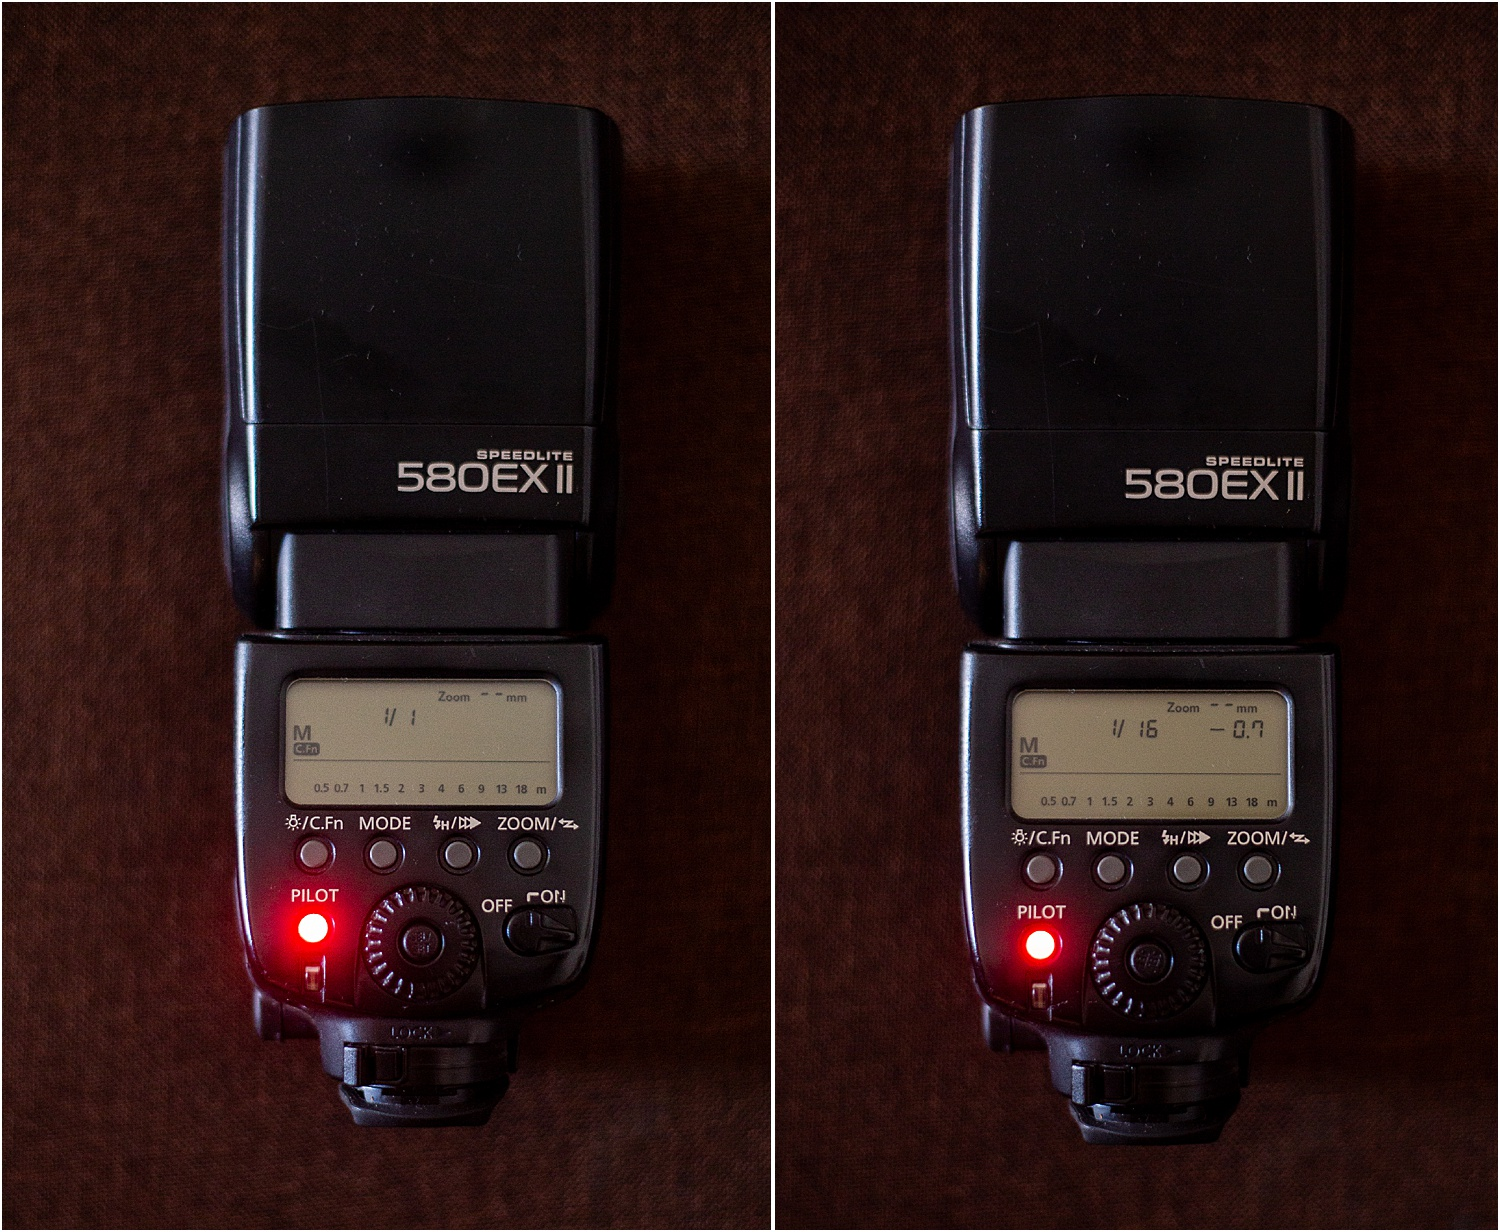 2 - Use of manual mode on your external flash